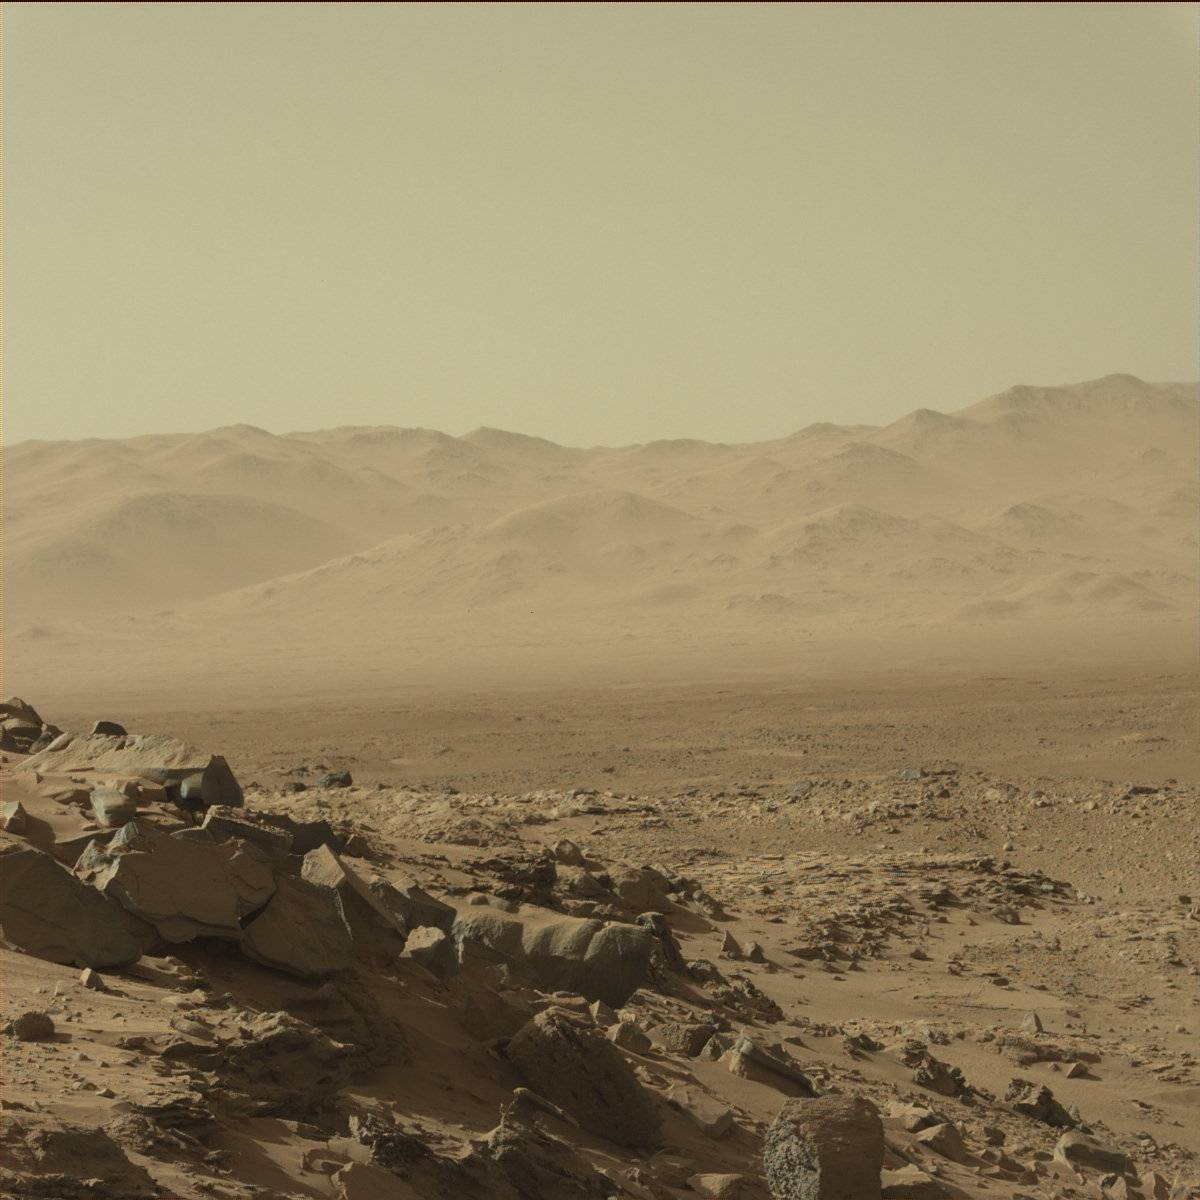 Mars by NASA's Curiosity Rover